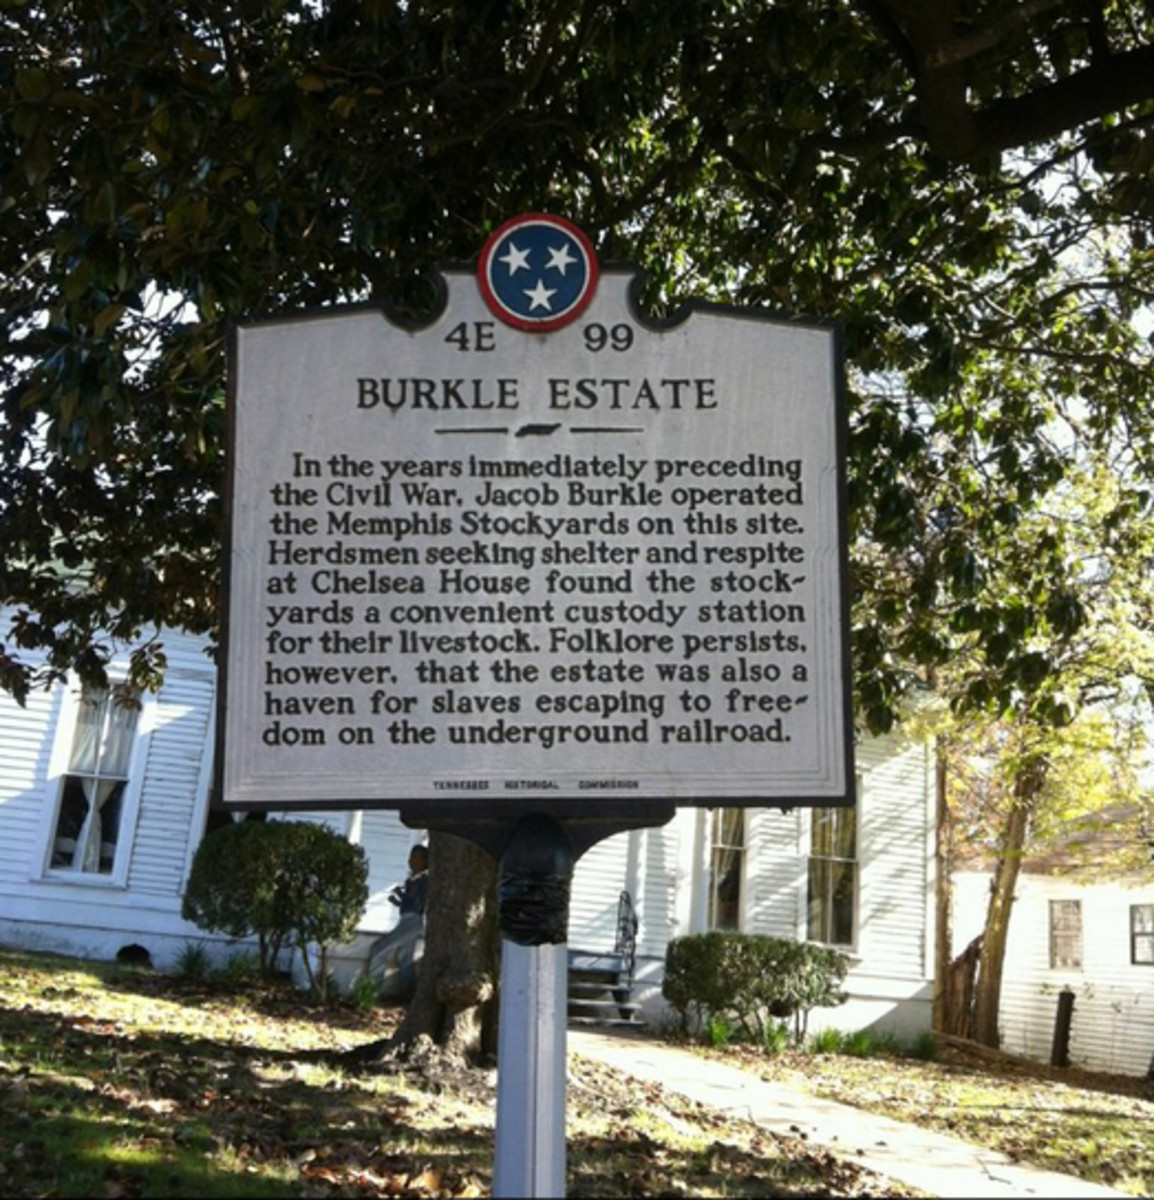 The Burkle Estate was near the banks of the Mississippi River and was an excellent stop for escapees as they fled to the freedom of the North.